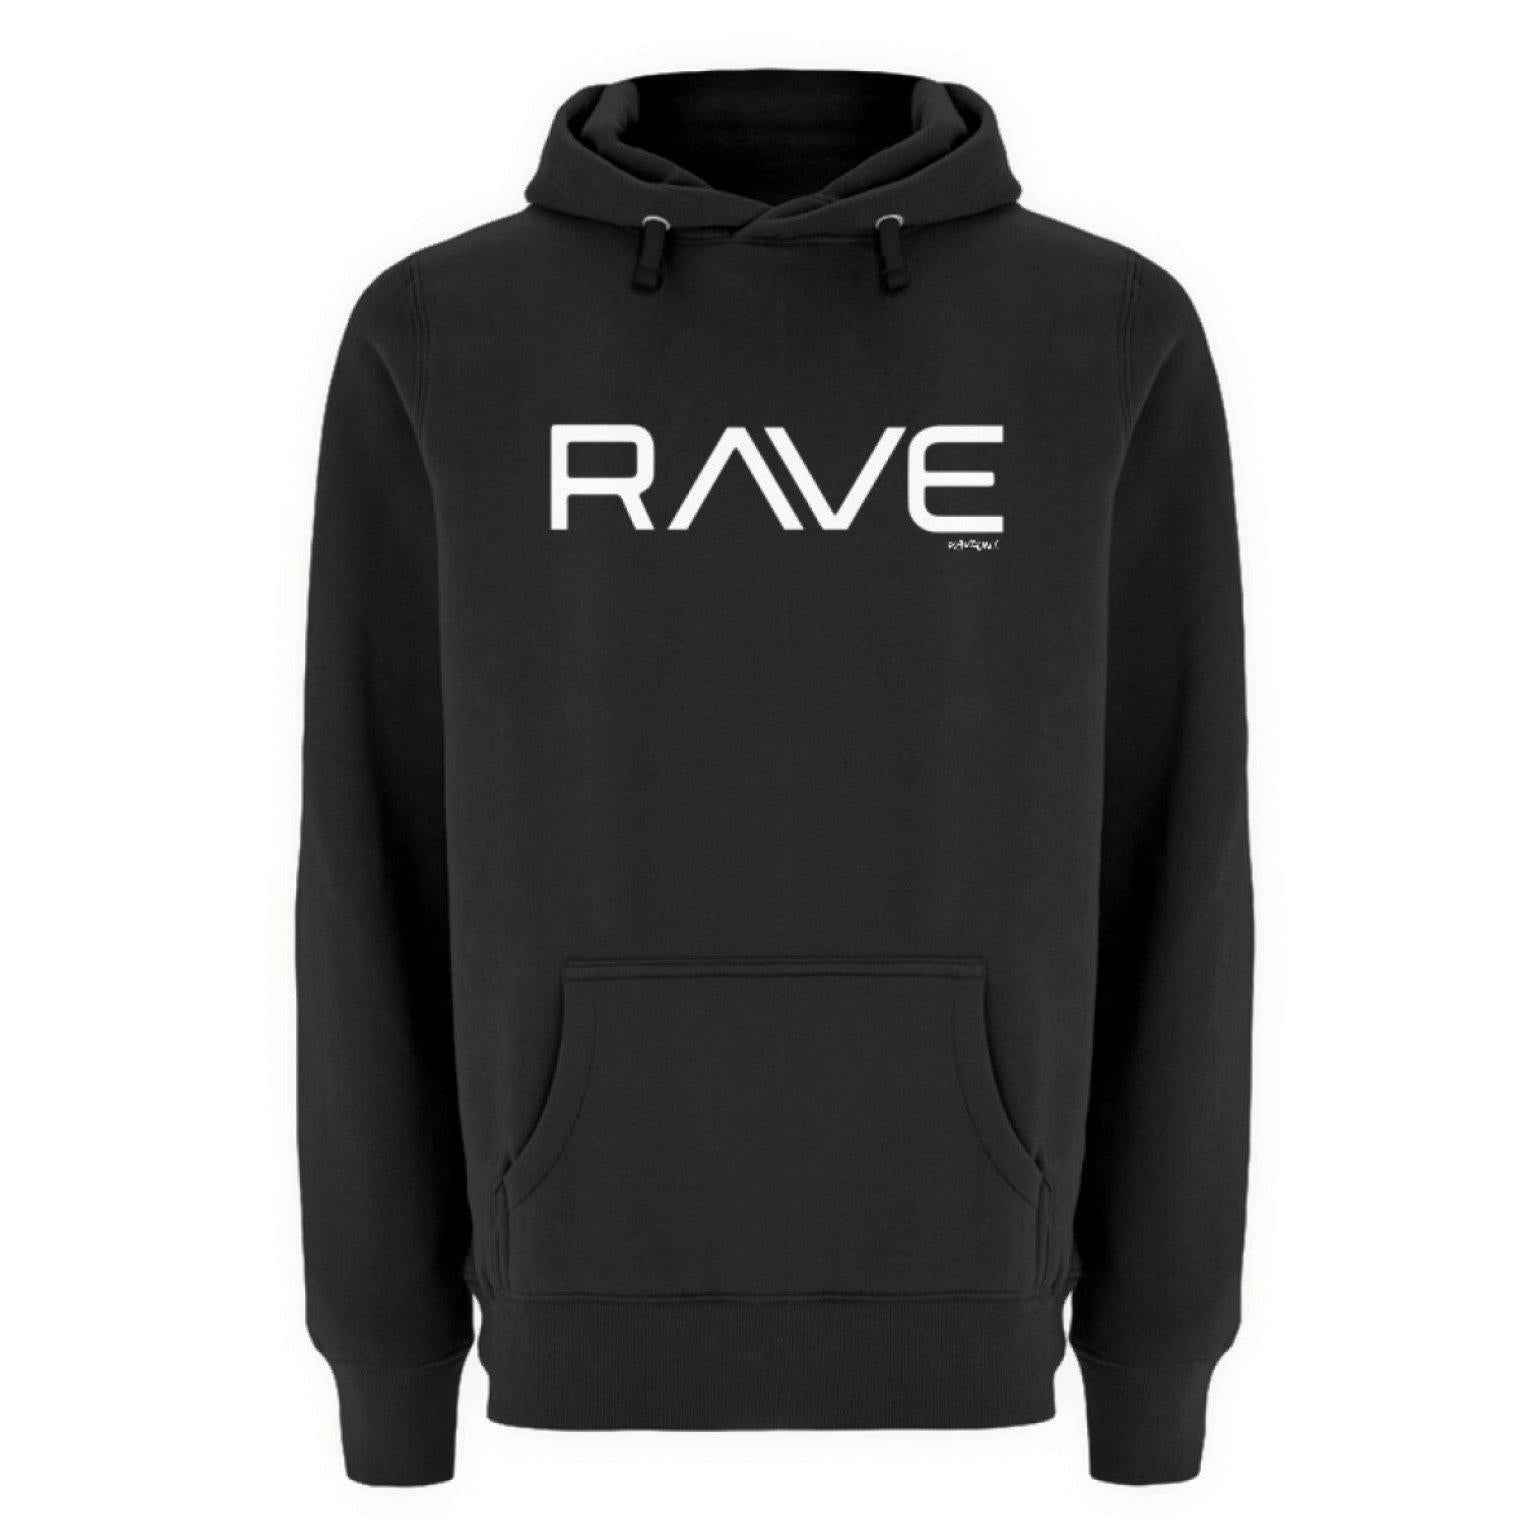 RAVE - Rave On!® Black T-Shirt - Unisex Premium Kapuzenpullover Unisex Premium Hoodie Black / S - Rave On!® der Club & Techno Szene Shop für Coole Junge Mode Streetwear Style & Fashion Outfits + Sexy Festival 420 Stuff